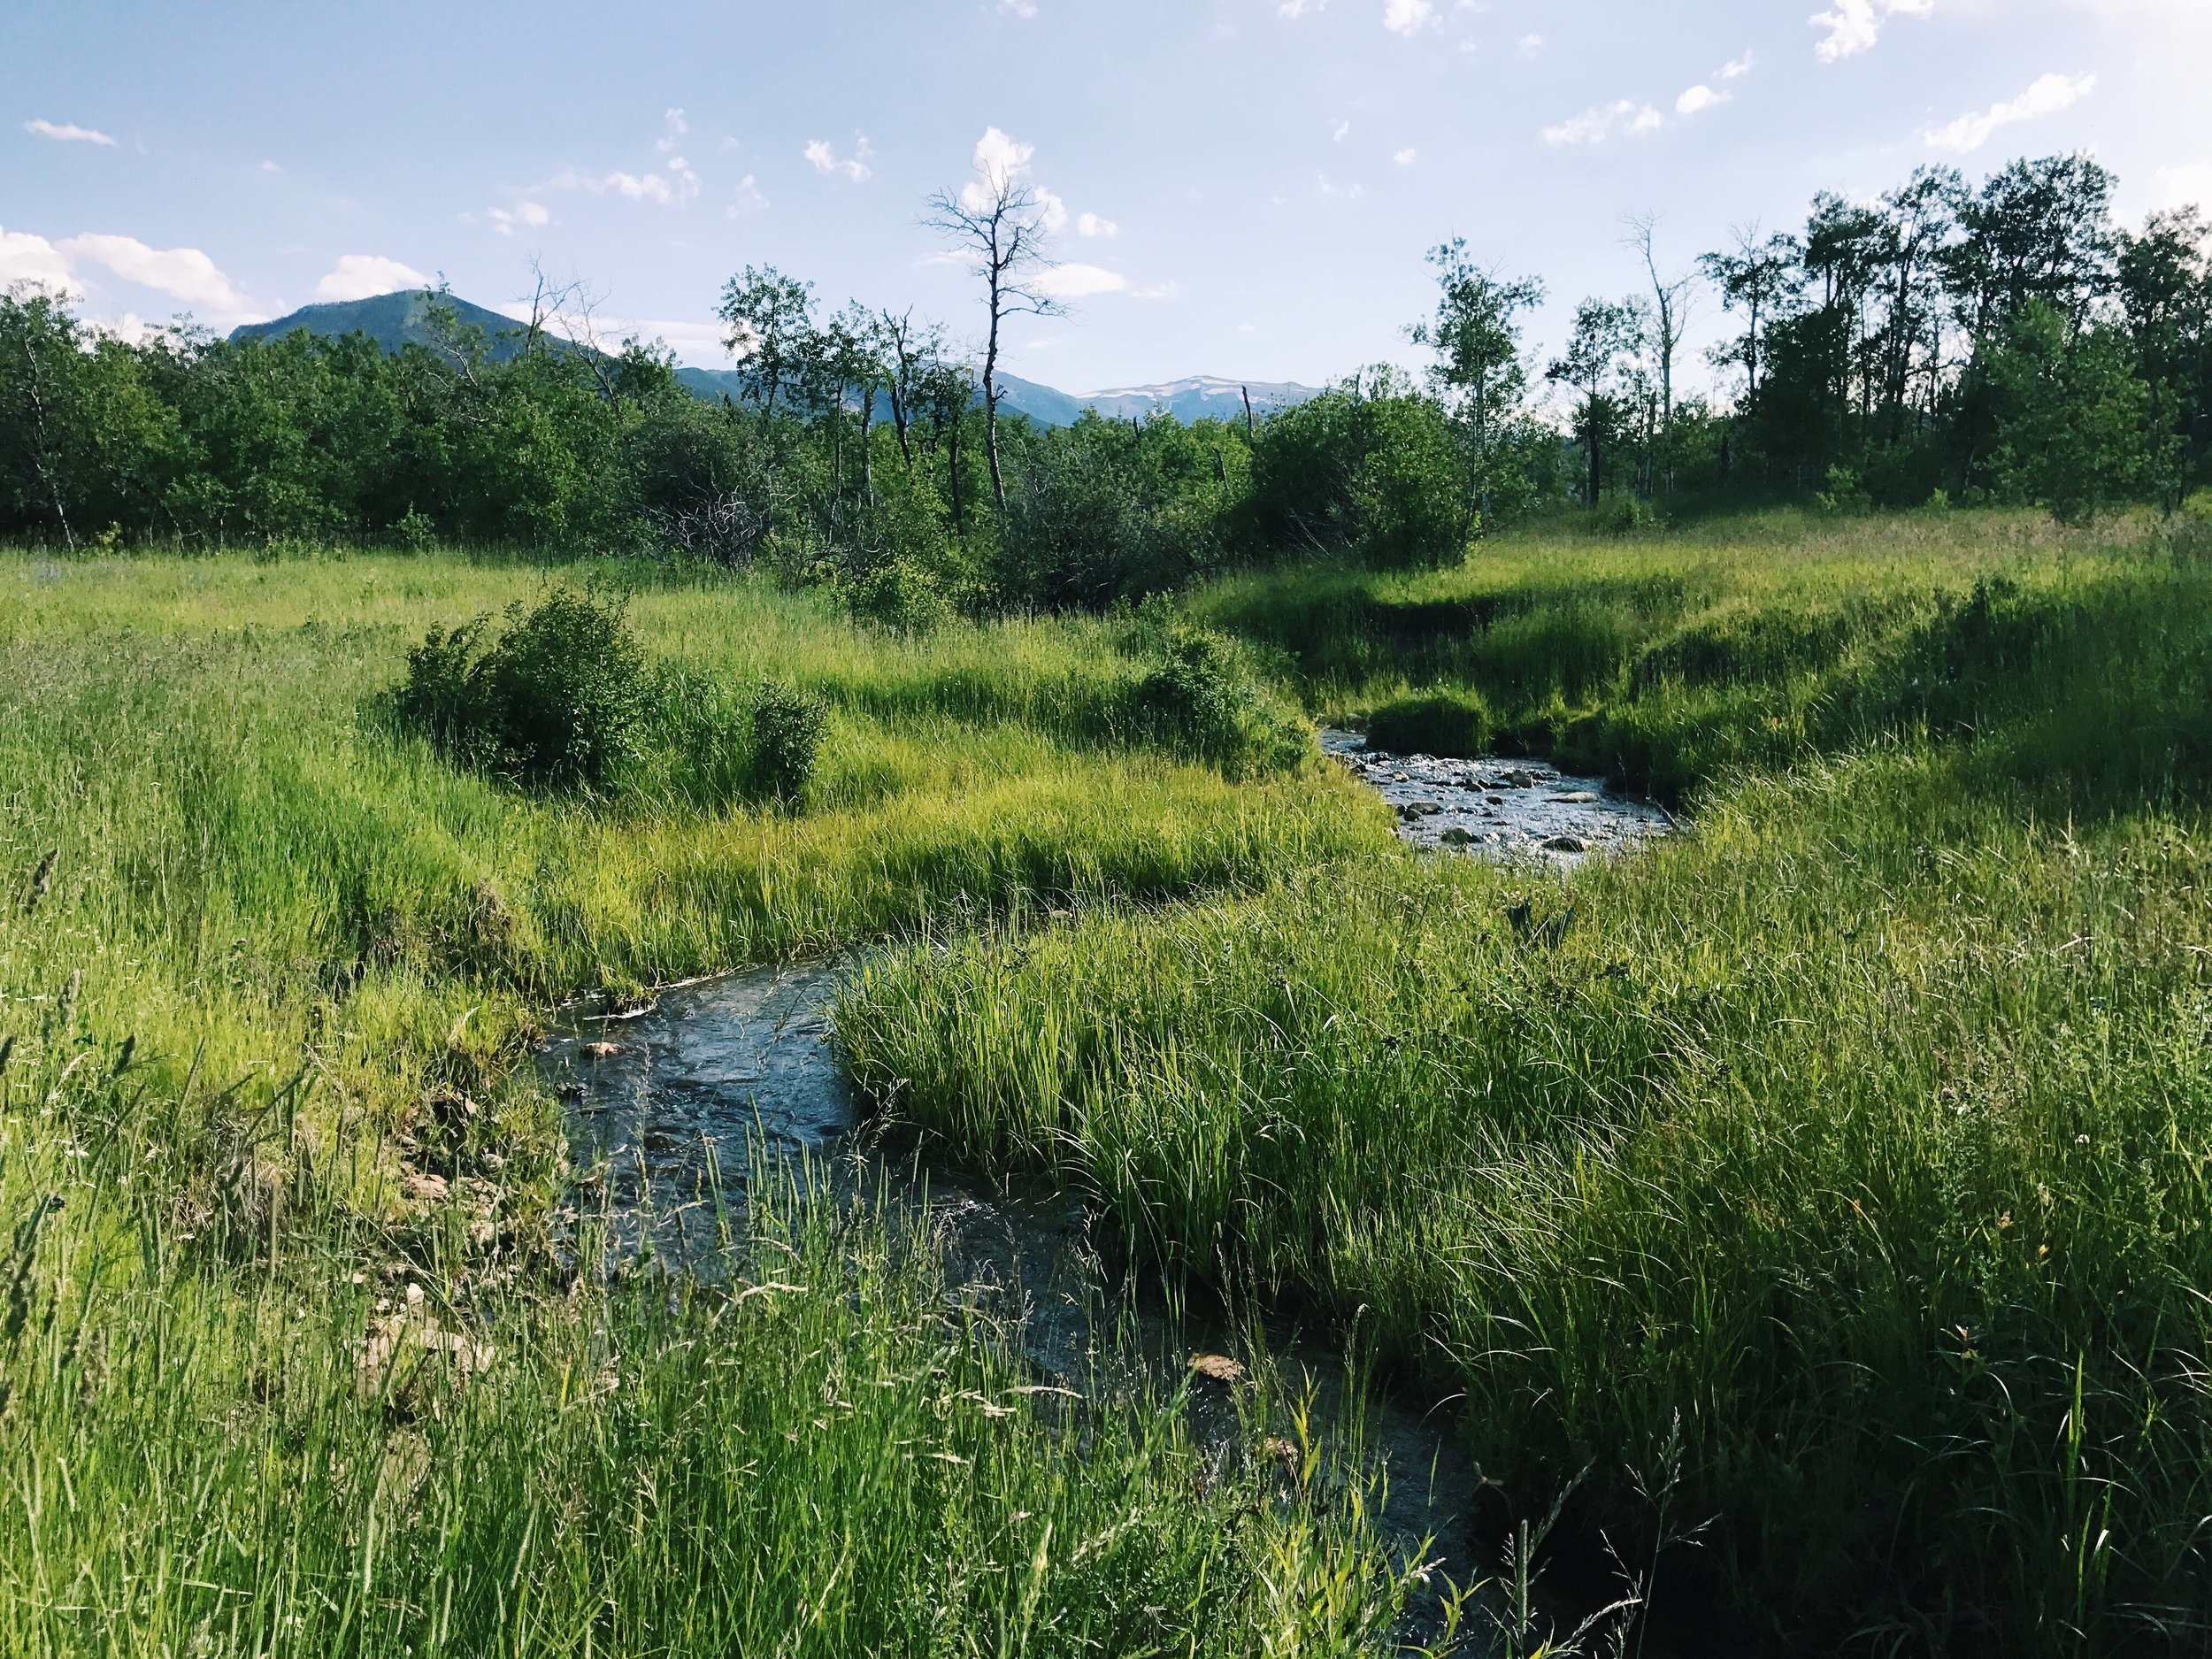 Morris Creek on the Lazy E-L Ranch in Montana, grazed one to two times annually with approx 1200 head of yearlings for a few days. Thanks to planned grazing and the engineering of beavers, this wetland serves as a heron rookery each year.